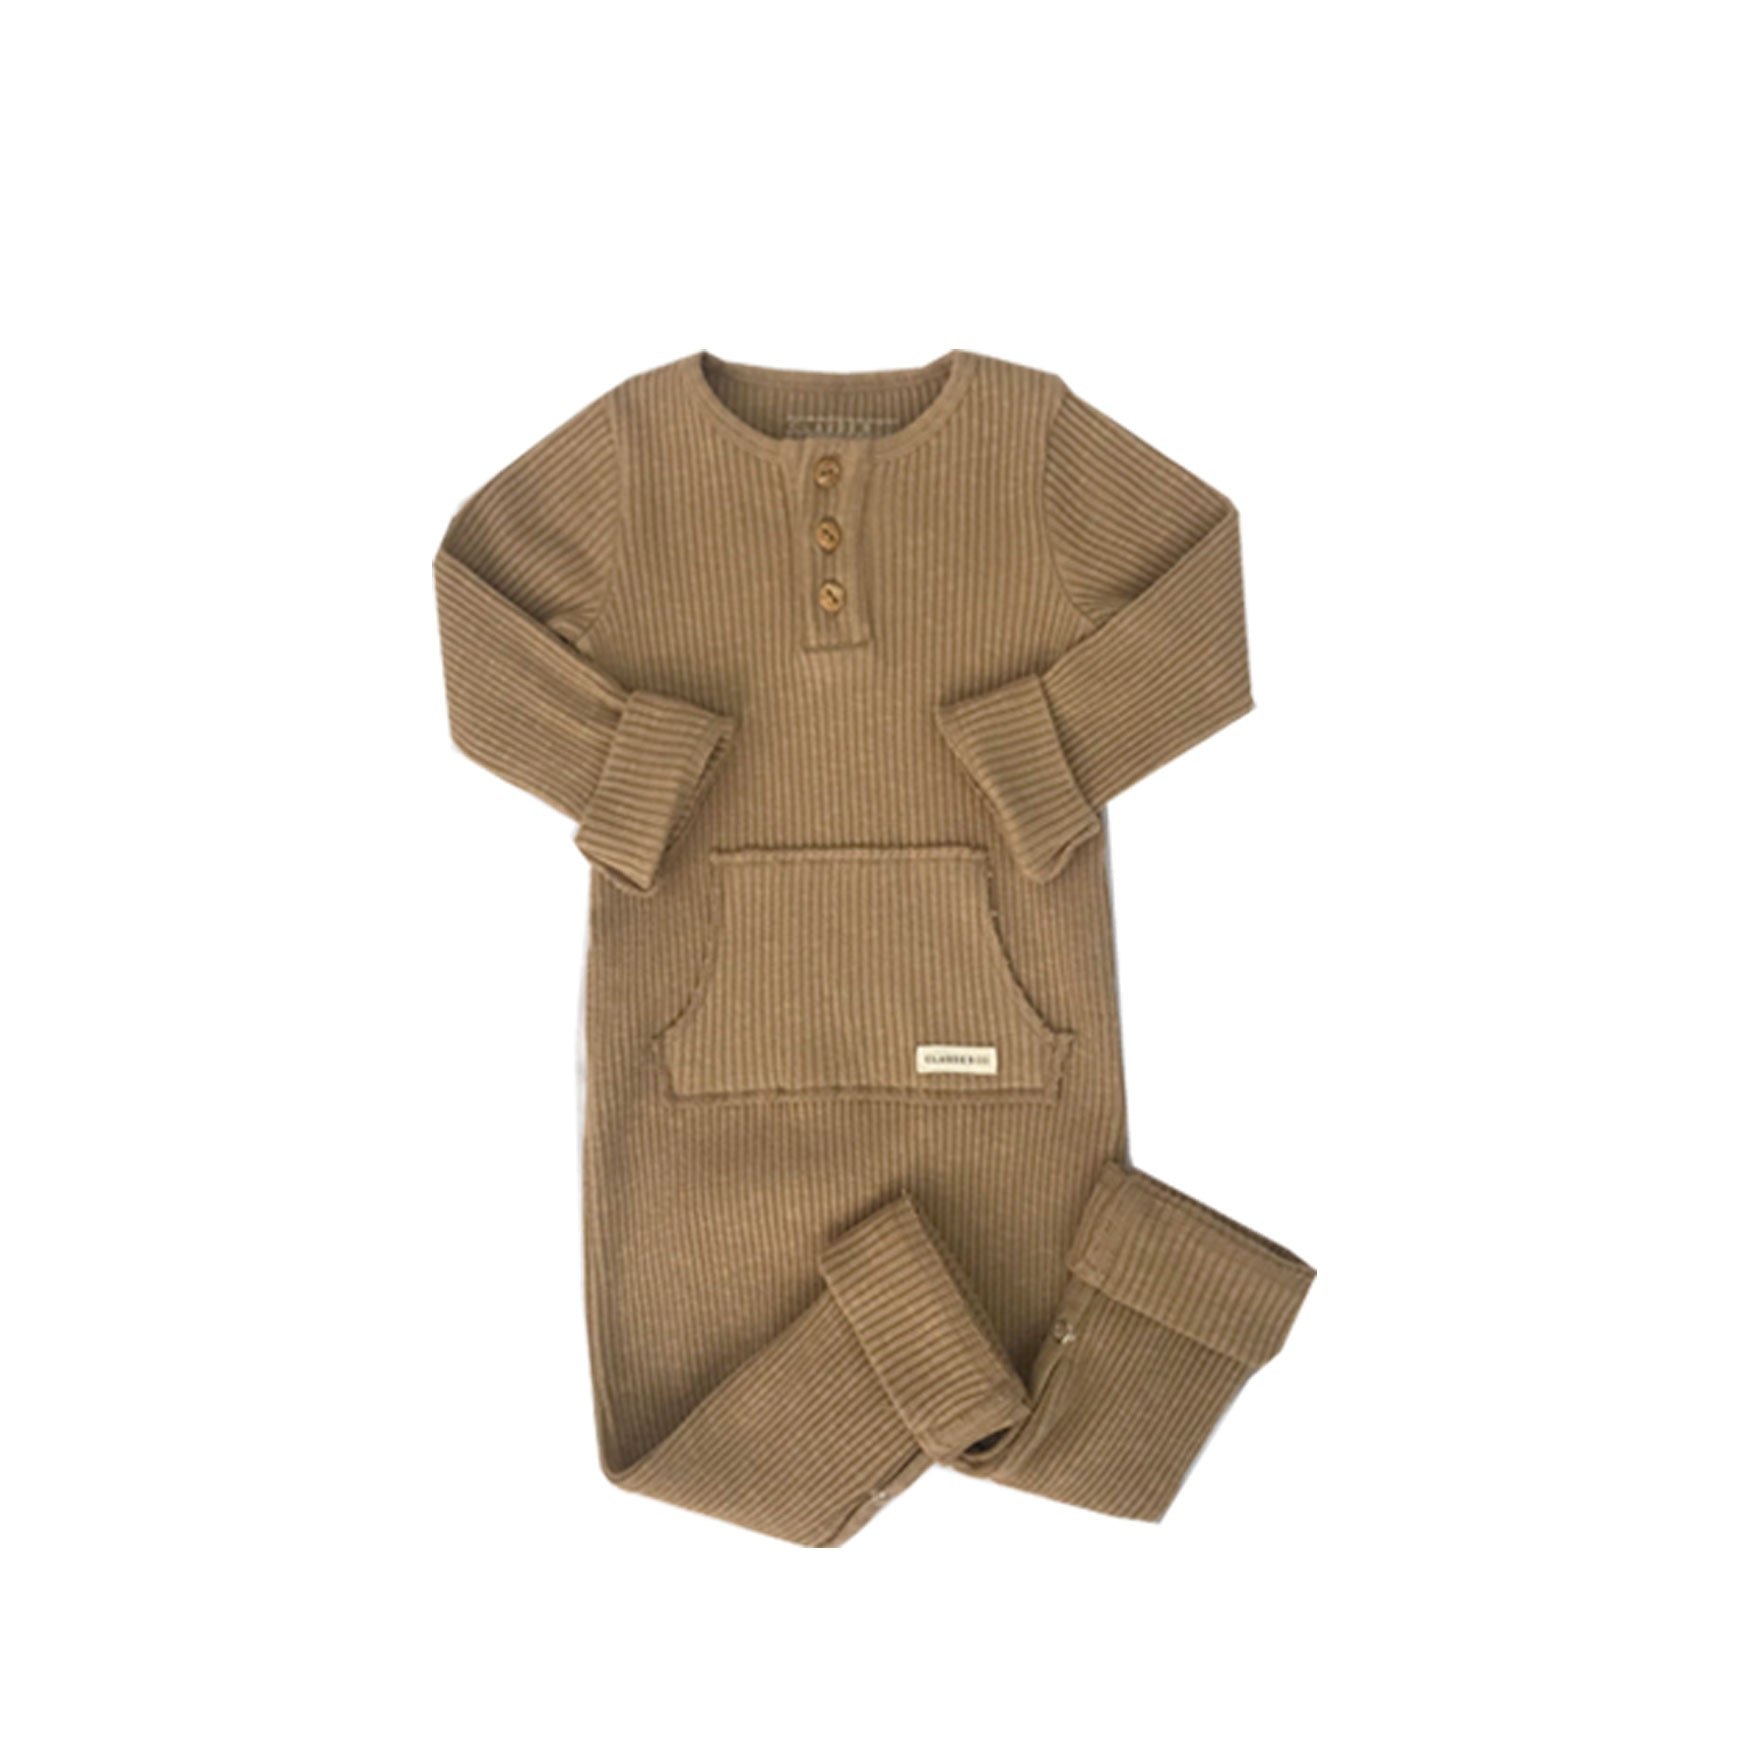 Caramel Rib Suit - Claude & Co